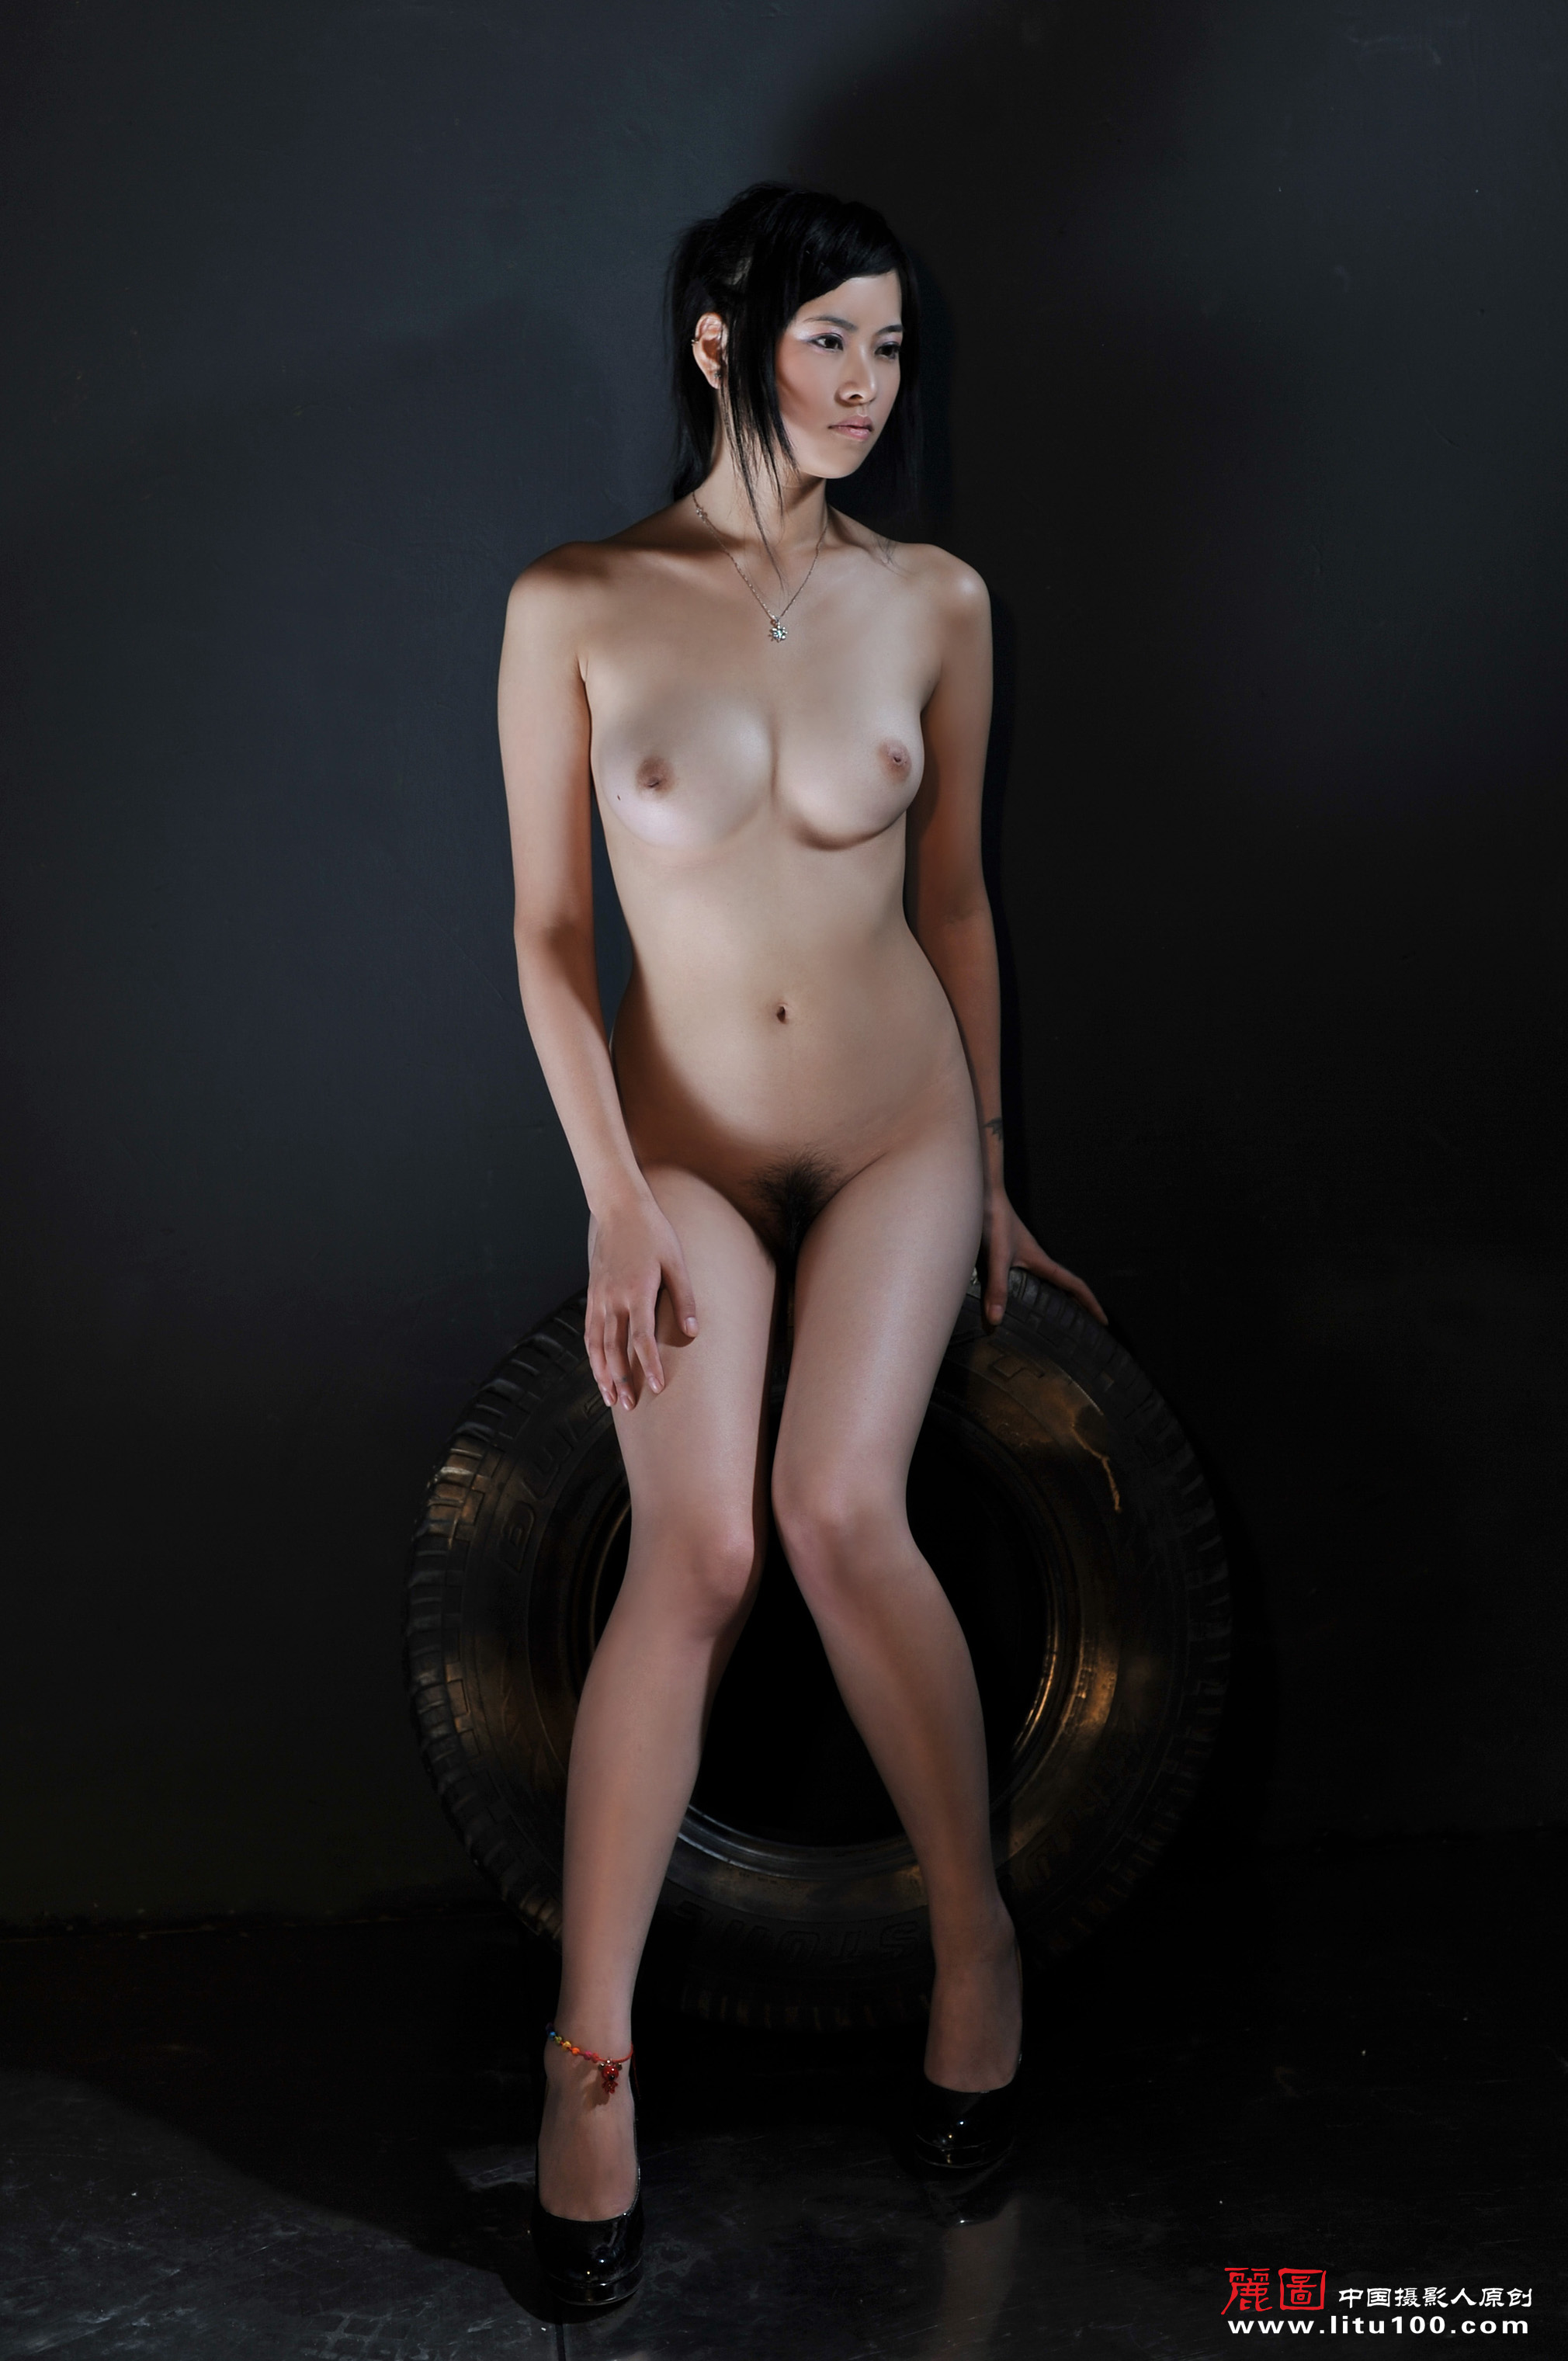 Chinese nude photography